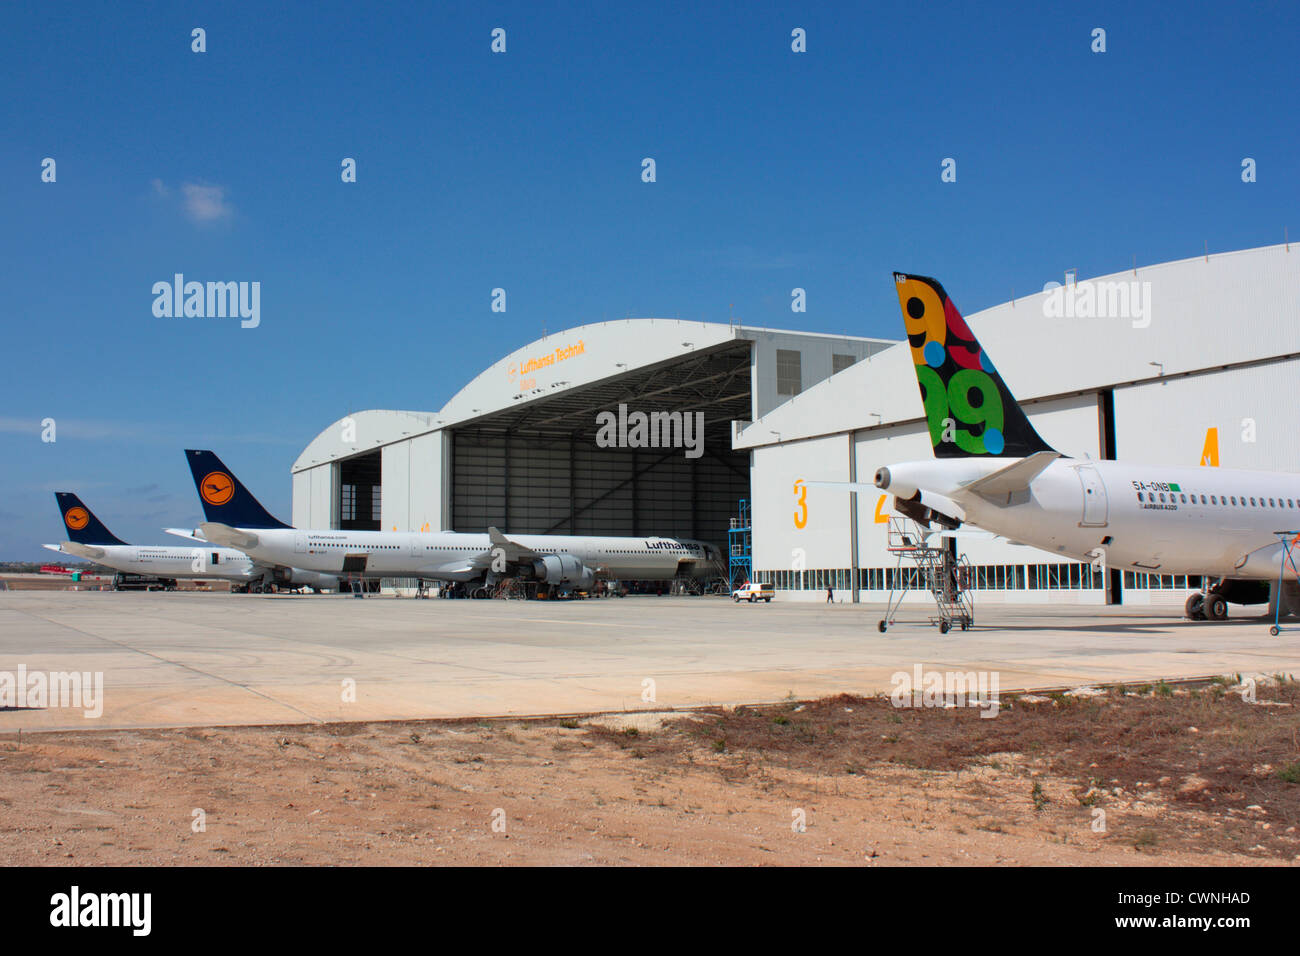 Lufthansa Technik Malta aircraft maintenance hangars with jet planes undergoing overhaul - Stock Image